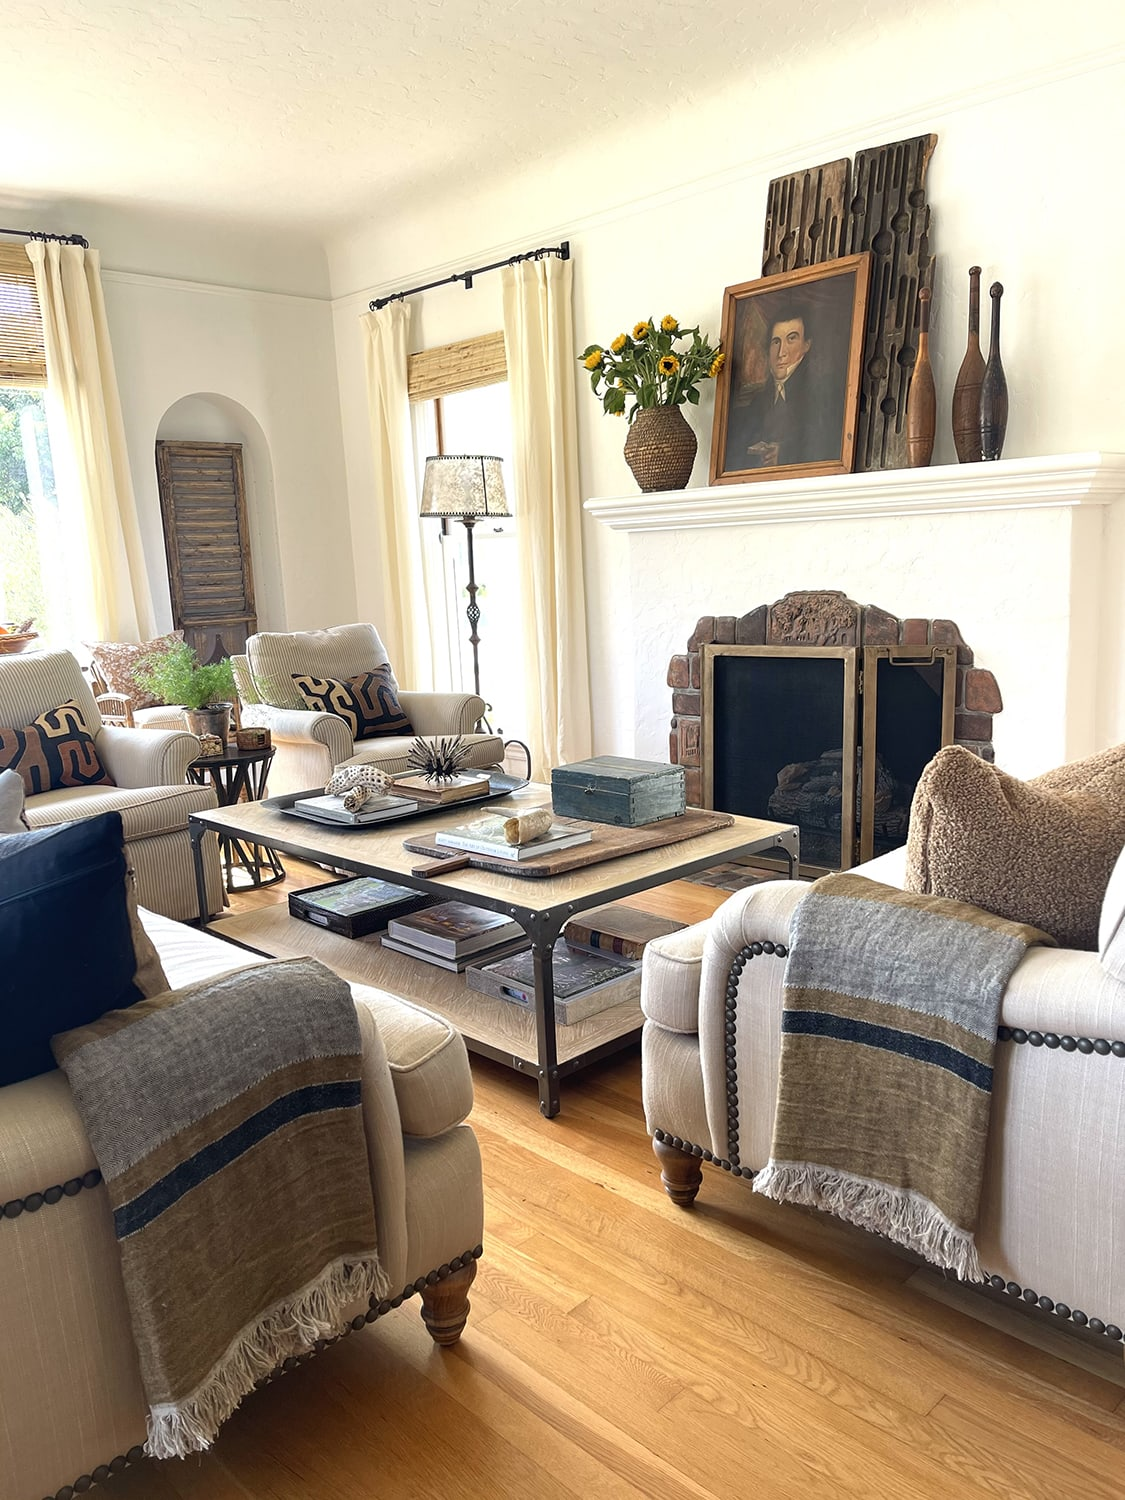 cindy hattersley's fall living room